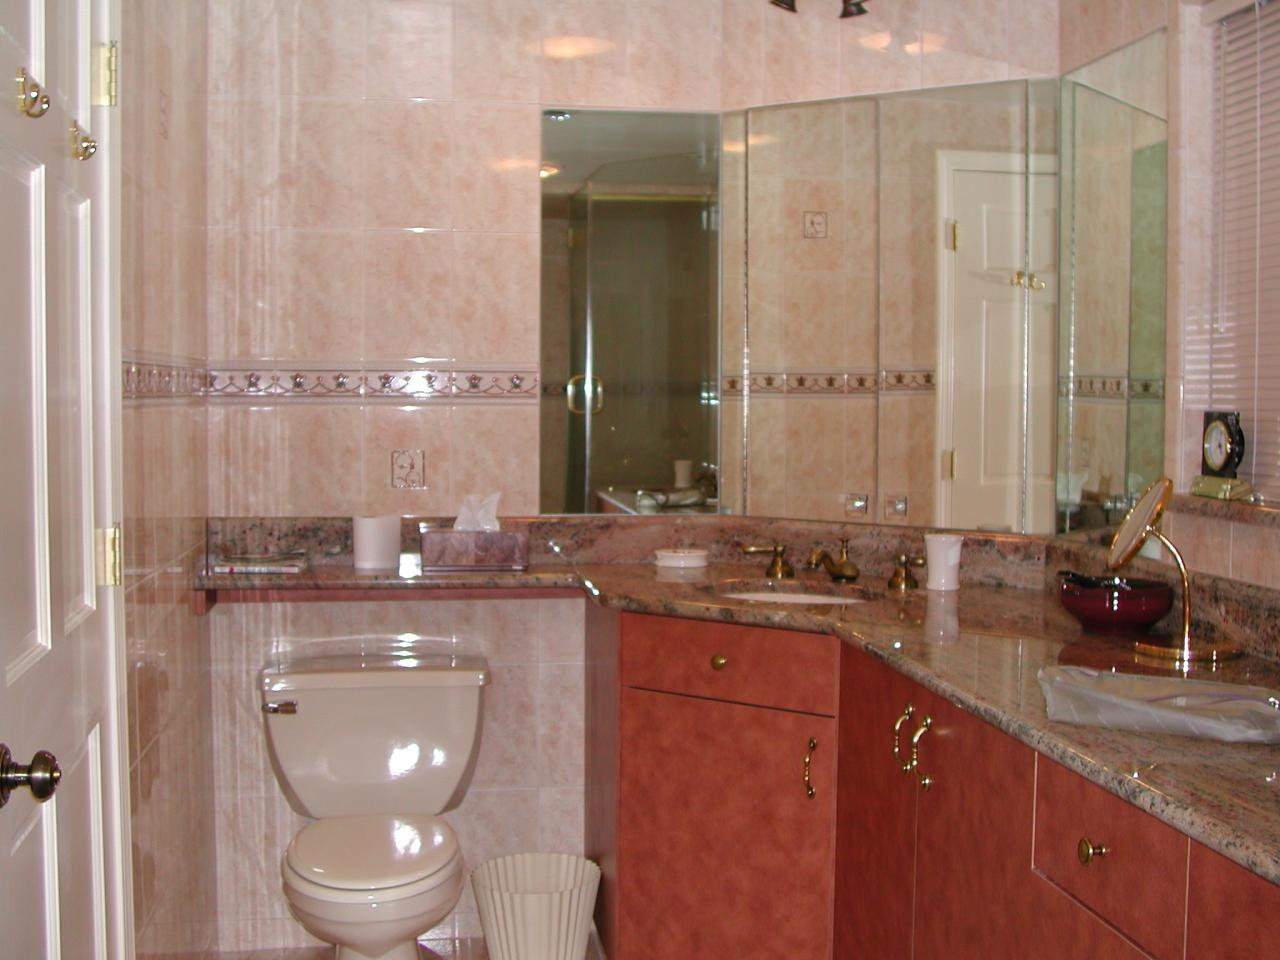 Nest Homes Construction Bathroom Remodeling In Cleveland Heights Ohioremodeling Contractor In